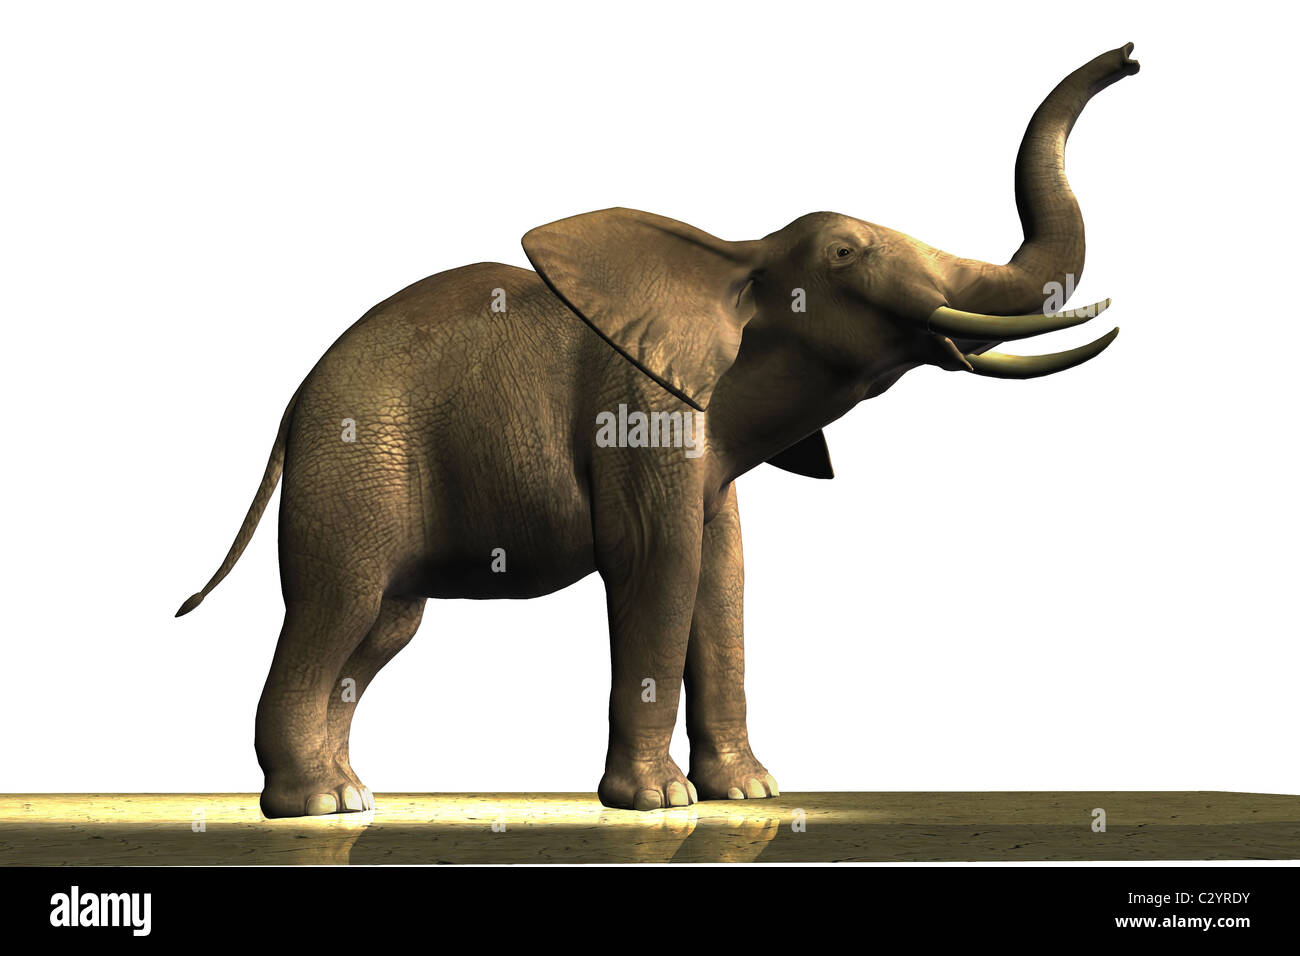 Male African elephant with ivory tusks. Stock Photo